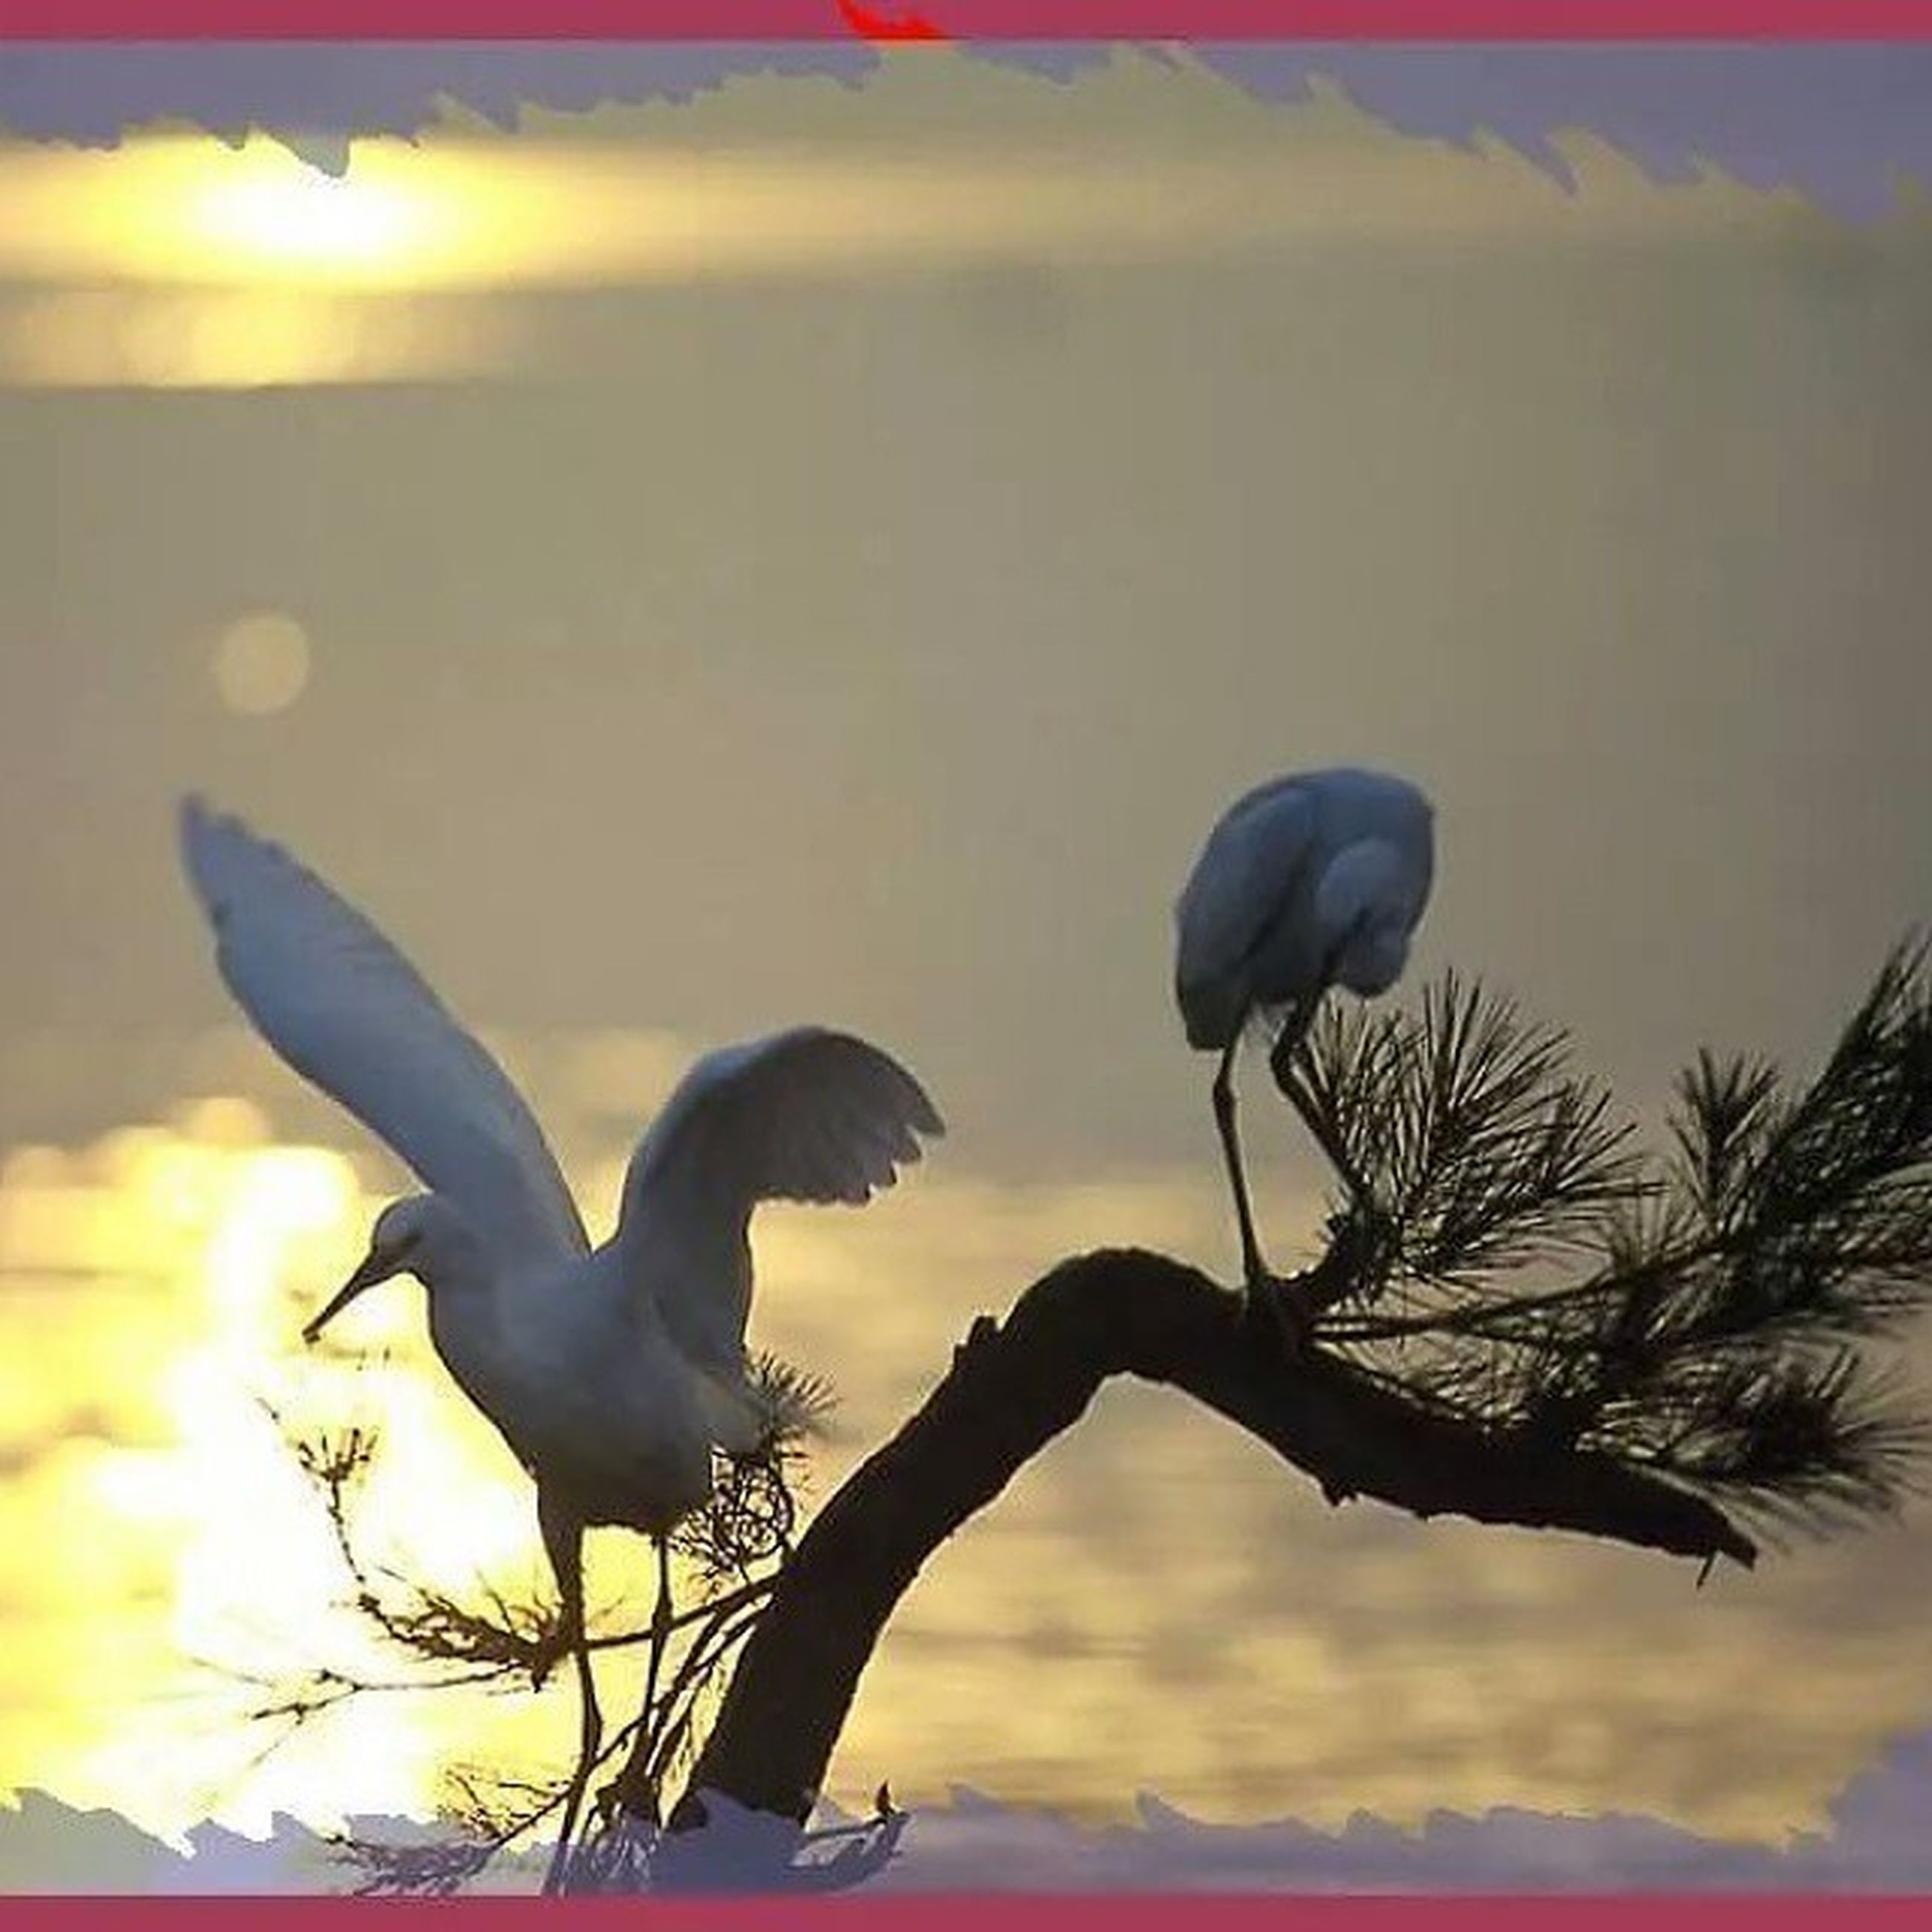 bird, animals in the wild, animal themes, wildlife, flying, sunset, perching, nature, sky, one animal, spread wings, water, silhouette, seagull, beauty in nature, two animals, outdoors, no people, sunlight, mid-air